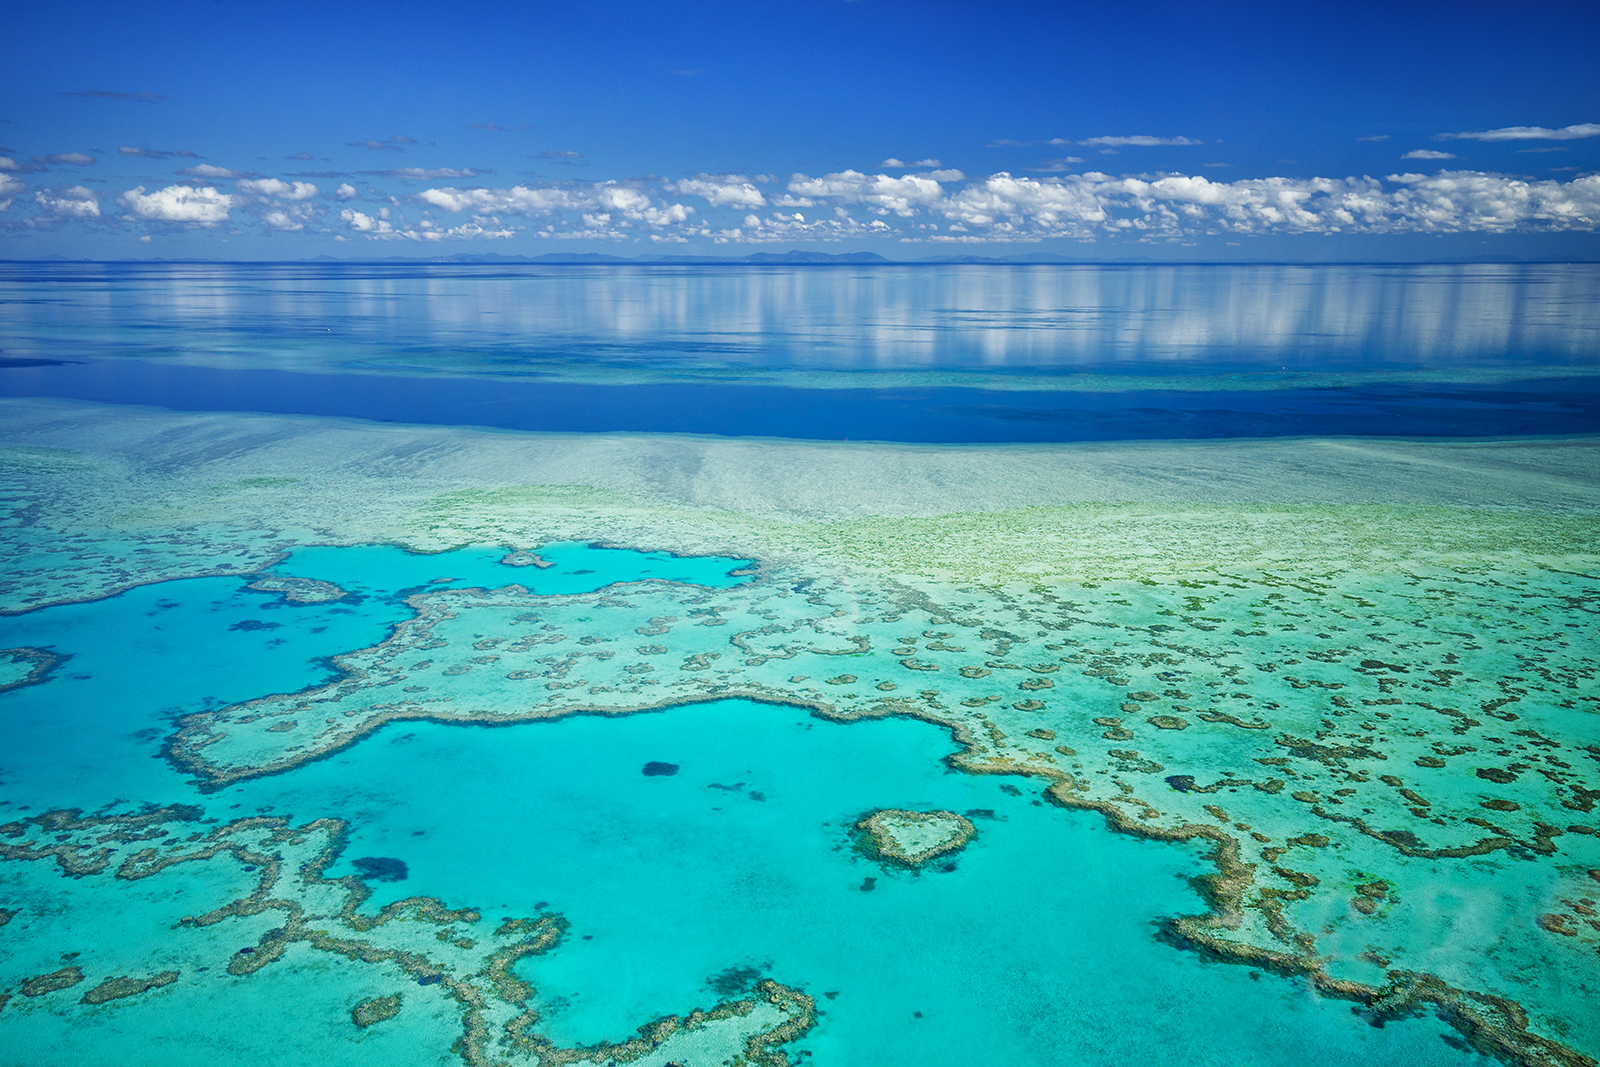 Arial view of the great barrier reef (outer reef) in the Whitsunday islands Queensland on a still and sunny day.